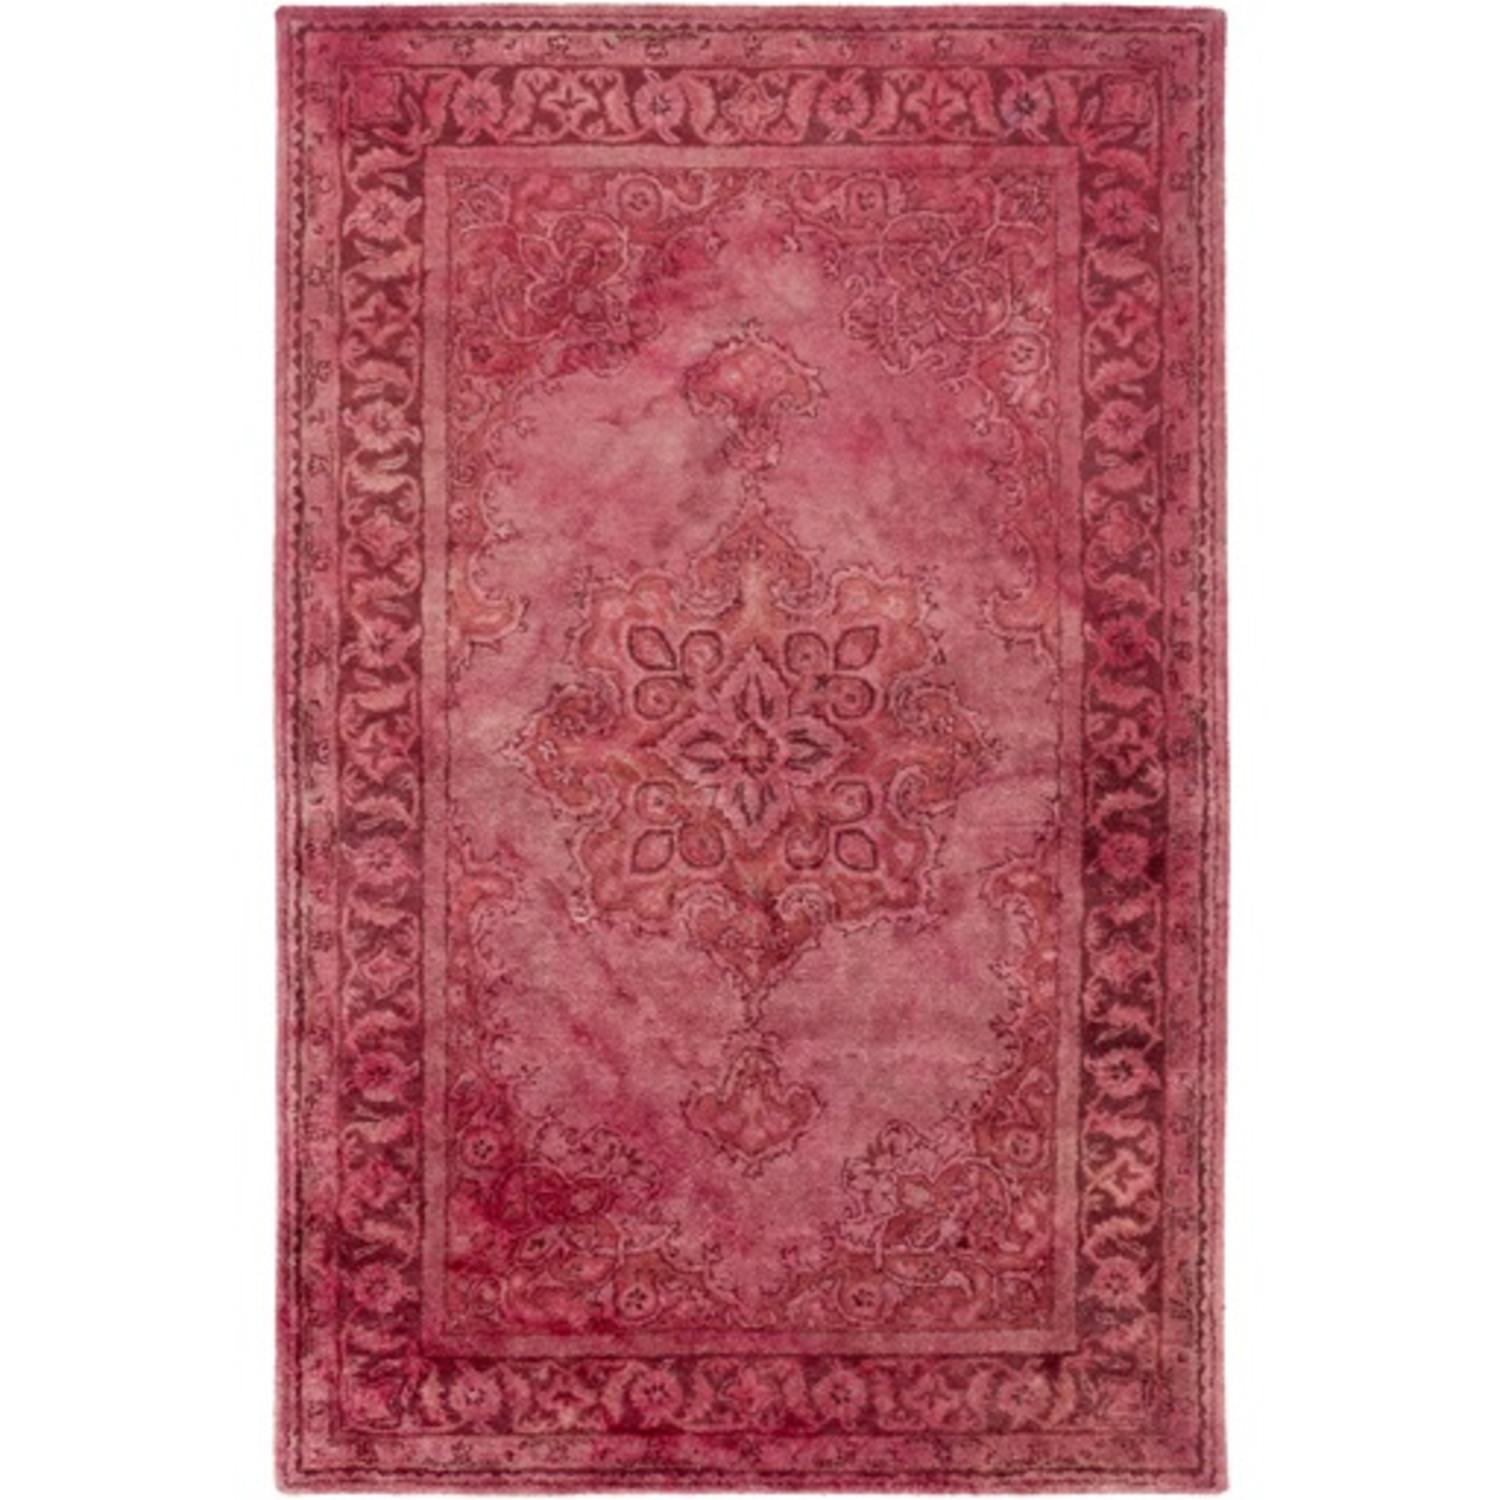 8' x 11' Cycladic Fantasy Cranberry Red and Pink Hand Tufted Area Throw Rug